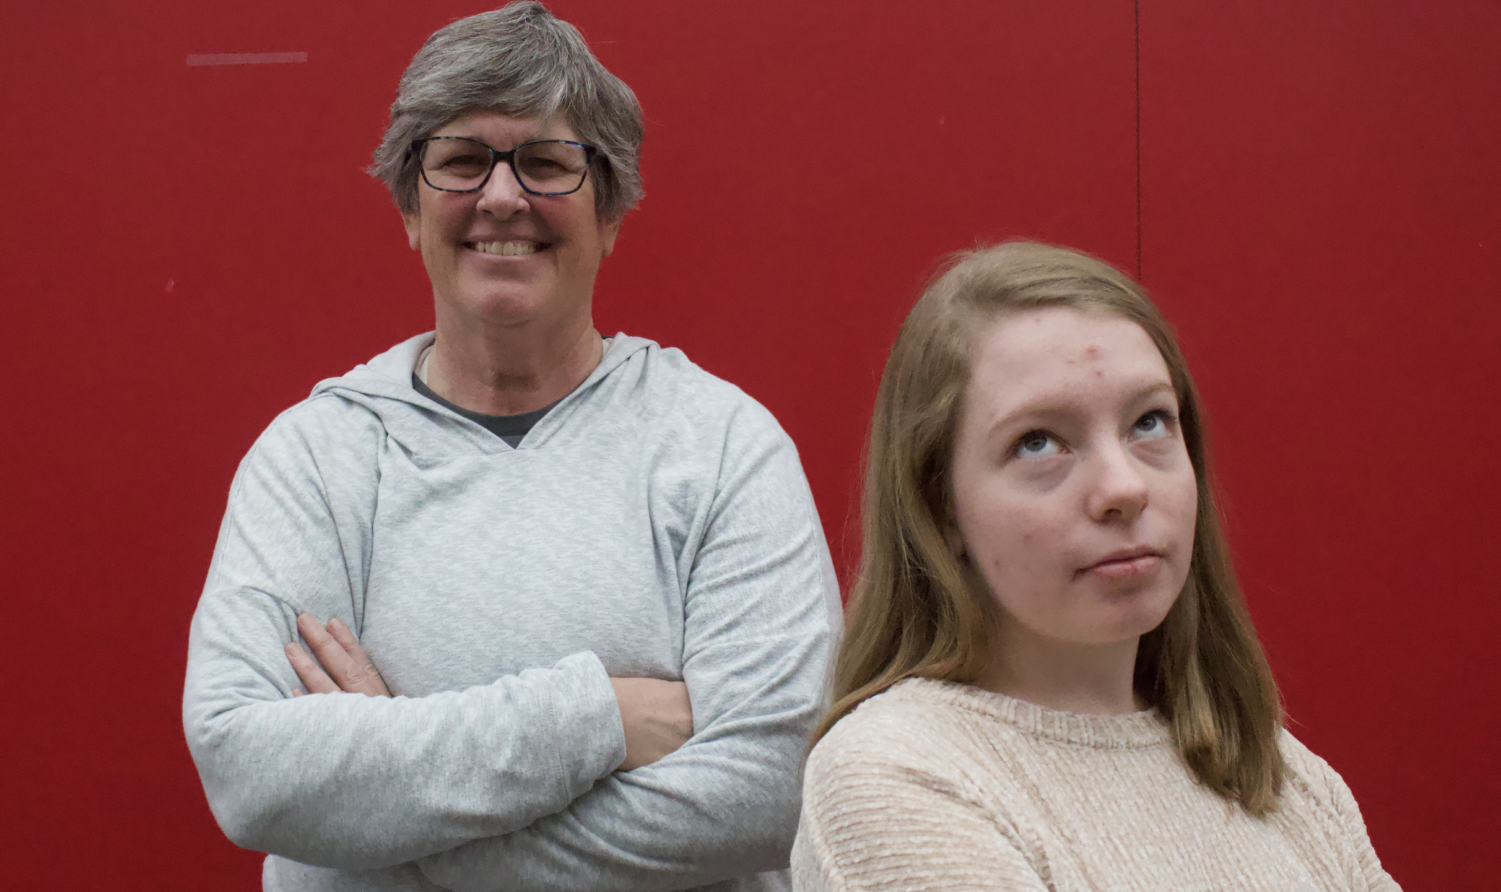 """Coppell High School Principal Laura Springer and The Sidekick executive editorial page editor Claire Clements stand together. Clements believes using the phrase """"OK Boomer"""" should simply be a harmless joke, not something to divide generations."""